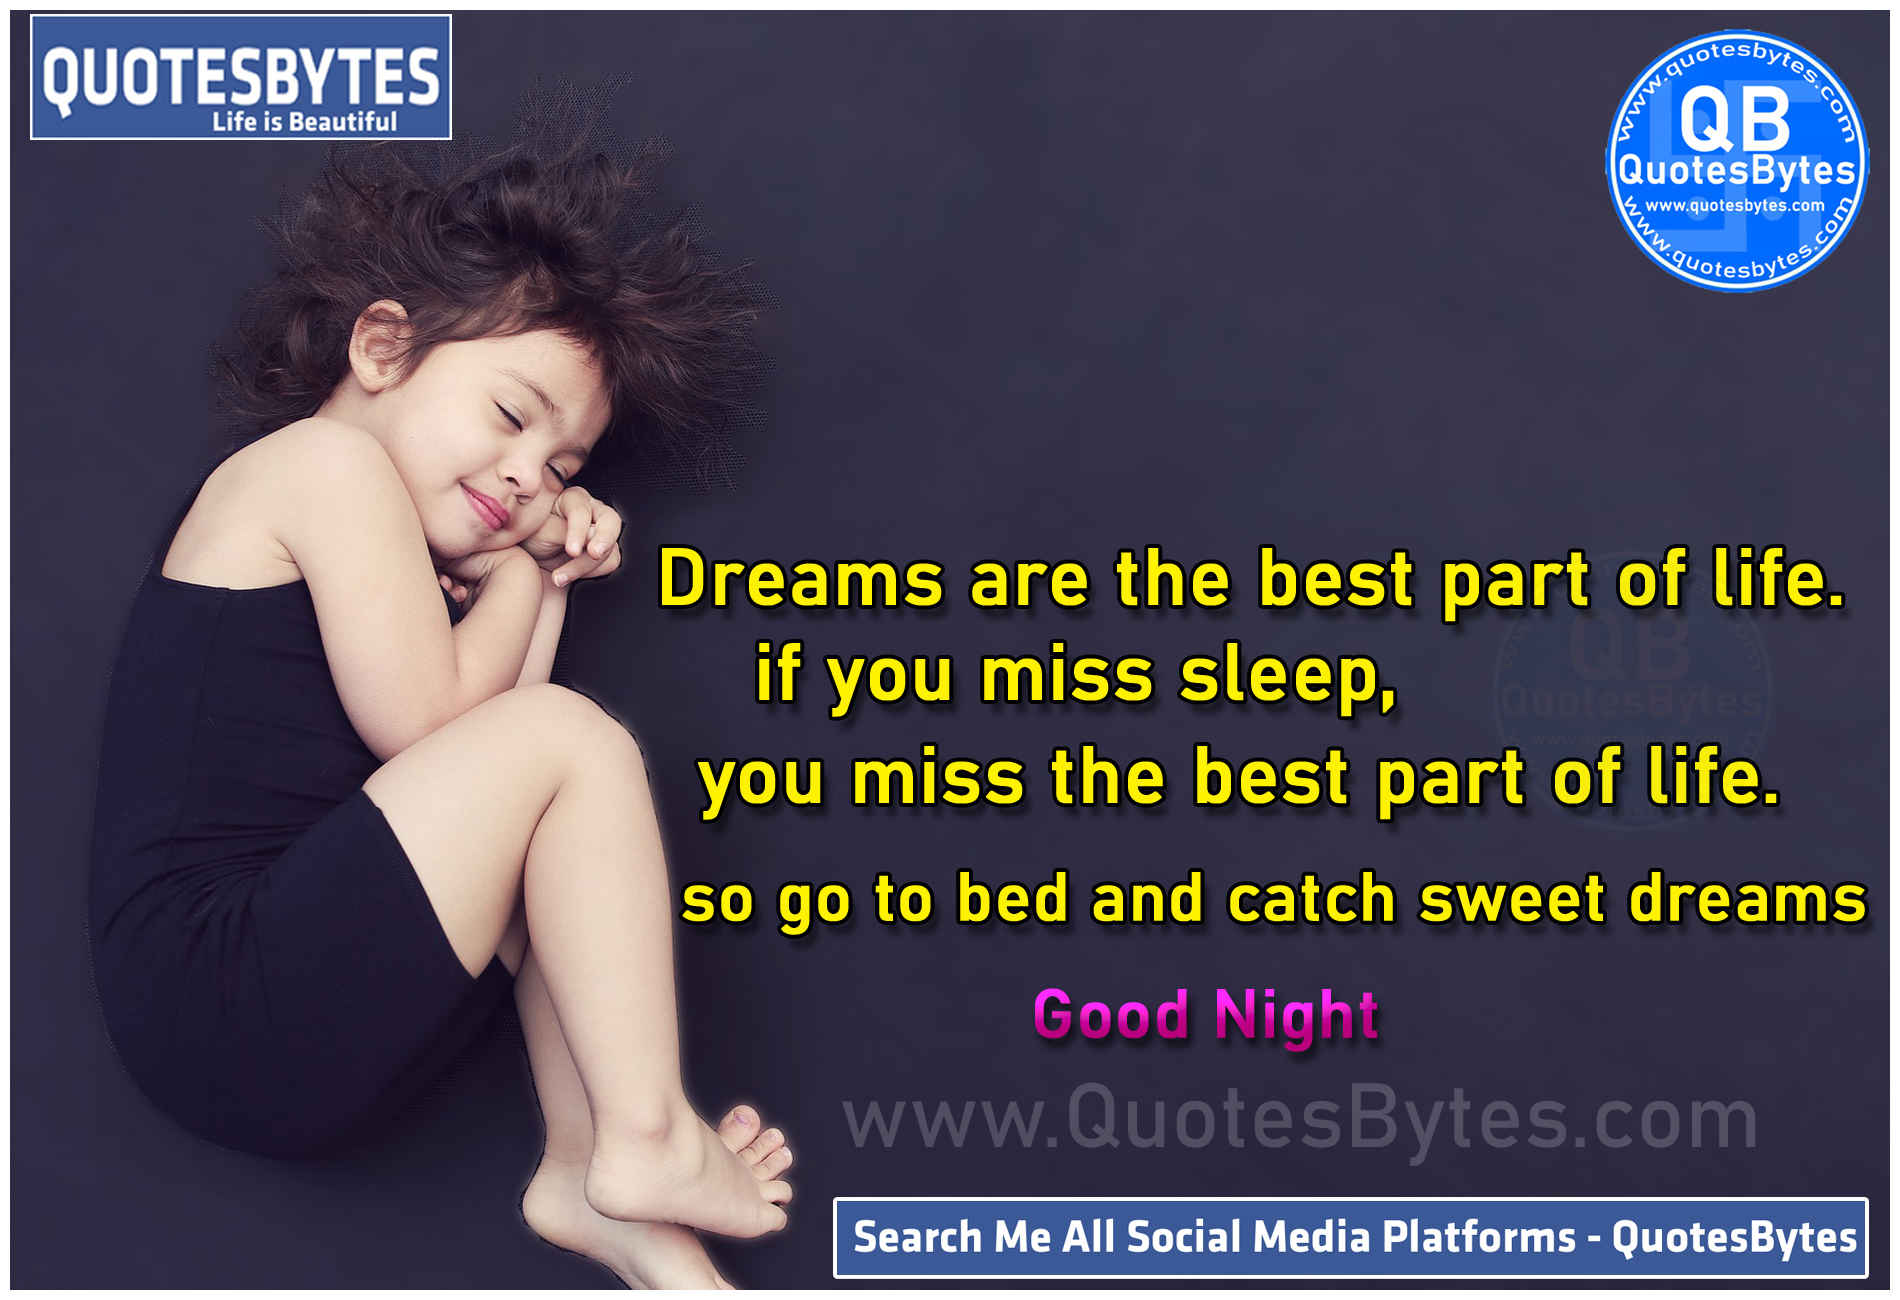 Latest English Good Night Quotations, English good night quotations, English good night quotations download, latest English good night images, good night quotations in English,Best inspirational Good night quotes in English, Best Quotes About Life,quotesbytes,inspirational quotes, Life Quotes — Inspiring the Happy, Good and Funny in Life,motivational quotes,kannada motivational words,life quotes in English,motivational quotes in tamil,motivational quotes in kannada,sweet good night quotes,subhodayam English,good night motivational quotes in tamil,truth quotes images in hindi,motivational quotes in malayalam,love quotes in English,images of life lessons quotes,victory quotes,English good night kavithalu sms,funny English kavithalu,inspirational quotes in English,subhodayam images,subhodayam English images,motivational quotes in English,love quotes images kannada,goodnight images malayalam,inspirational quotes in English with images,good night kannada thoughts,success quotes in English,inspirational quotes in malayalam,marriage wishes in English quotes,motivational quotes English,tamil inspirational quotes,good night malayalam sms,funny kavithalu in English,best quotes in English,life motivational quotes in tamil,moral quotes in English,subhodayam photos, MOTIVATIONAL QUOTES TO REACH YOUR POTENTIAL EACH DAY, Inspirational Motivational Quotes To Inspire You To Greatness,motivational quotes tamil,English animutyalu, English sooktulu, shubhodayam greetings wishes messages in English,best English Goood night success Quotes with goal setting sms text messages for whatsapp,good night god images in English,love quotations,Latest English good night quotations for friends about win life goal settings,Quotes ideas | quotes, great quotes, best english good night quotes, inspirational quotes, English,malayalam love quotes in english,inspiring English quotes,motivational quotes in tamil images,good night images in kannada download,good night malayalam status,malayalam good night i